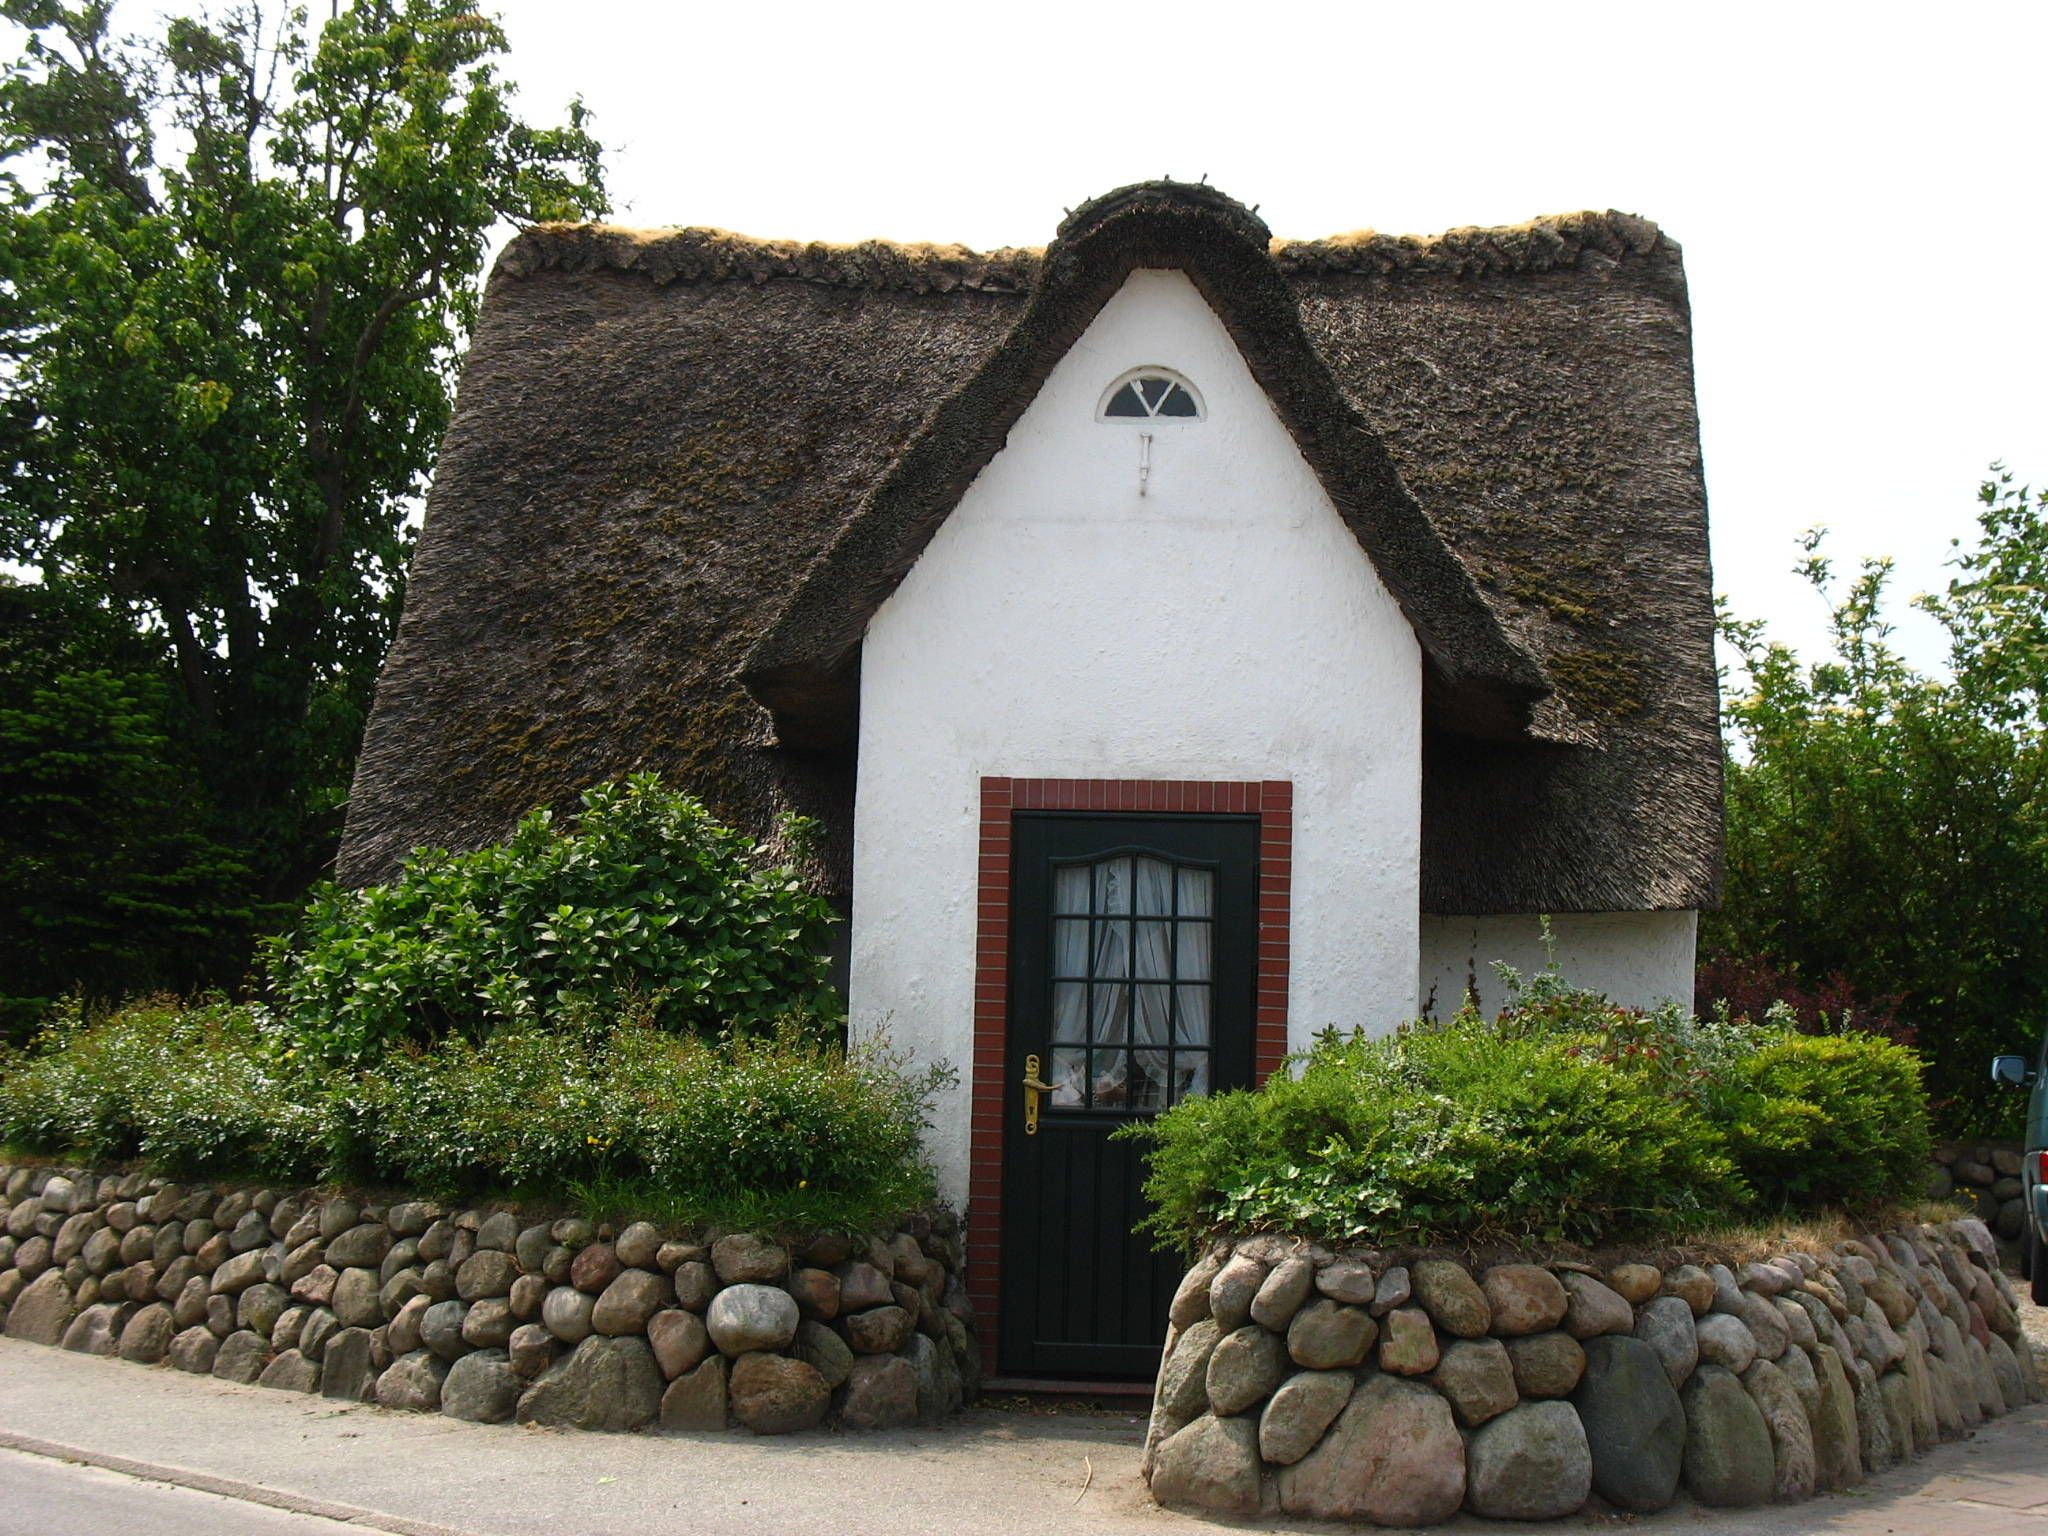 Thatched roof houses on pinterest cottages fairytale for The cottage house